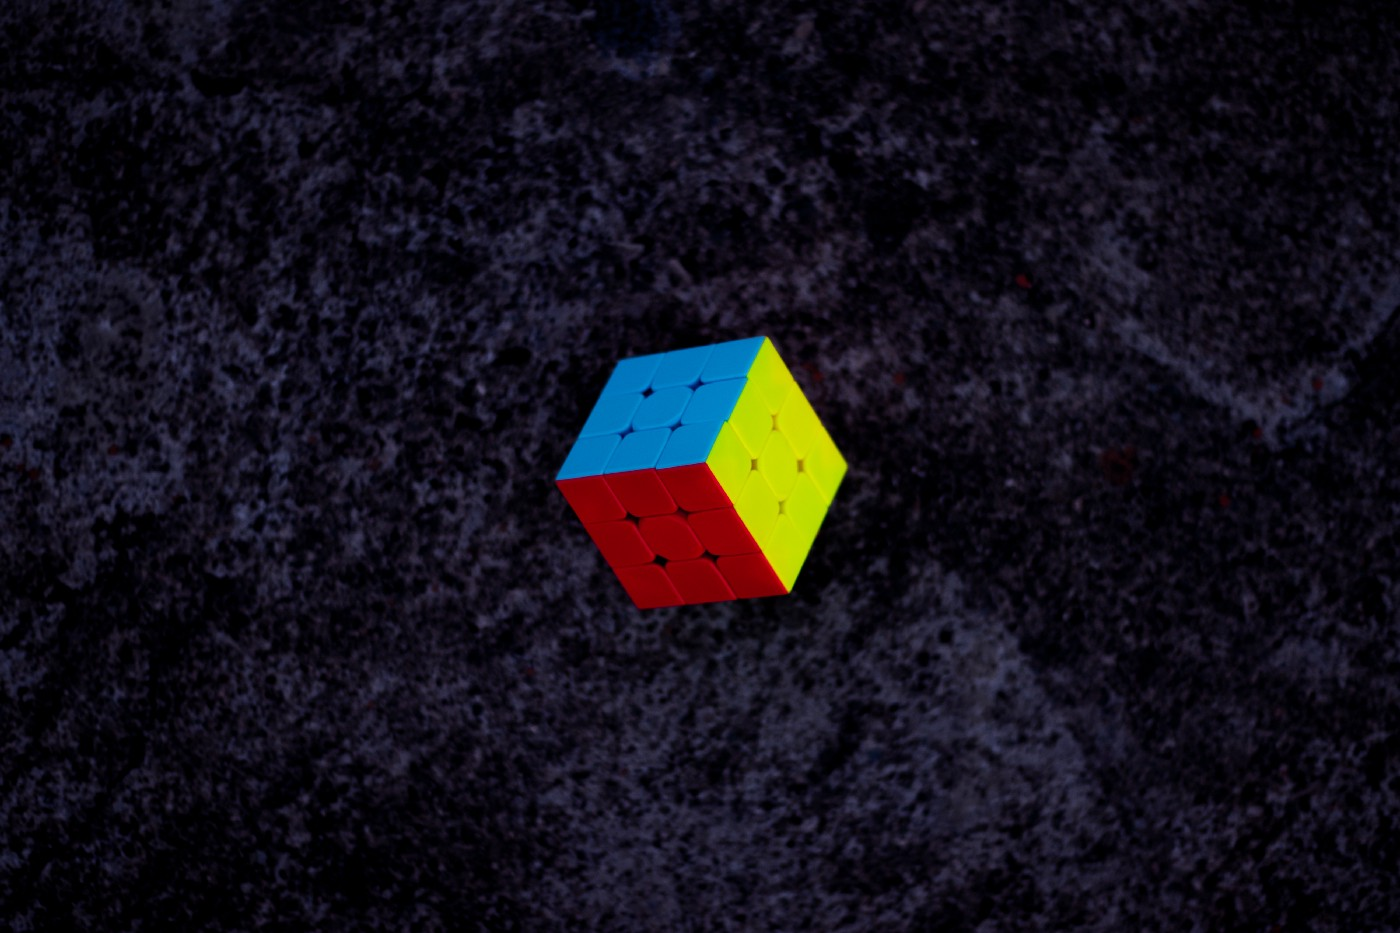 Rubic's cube floating against a black background